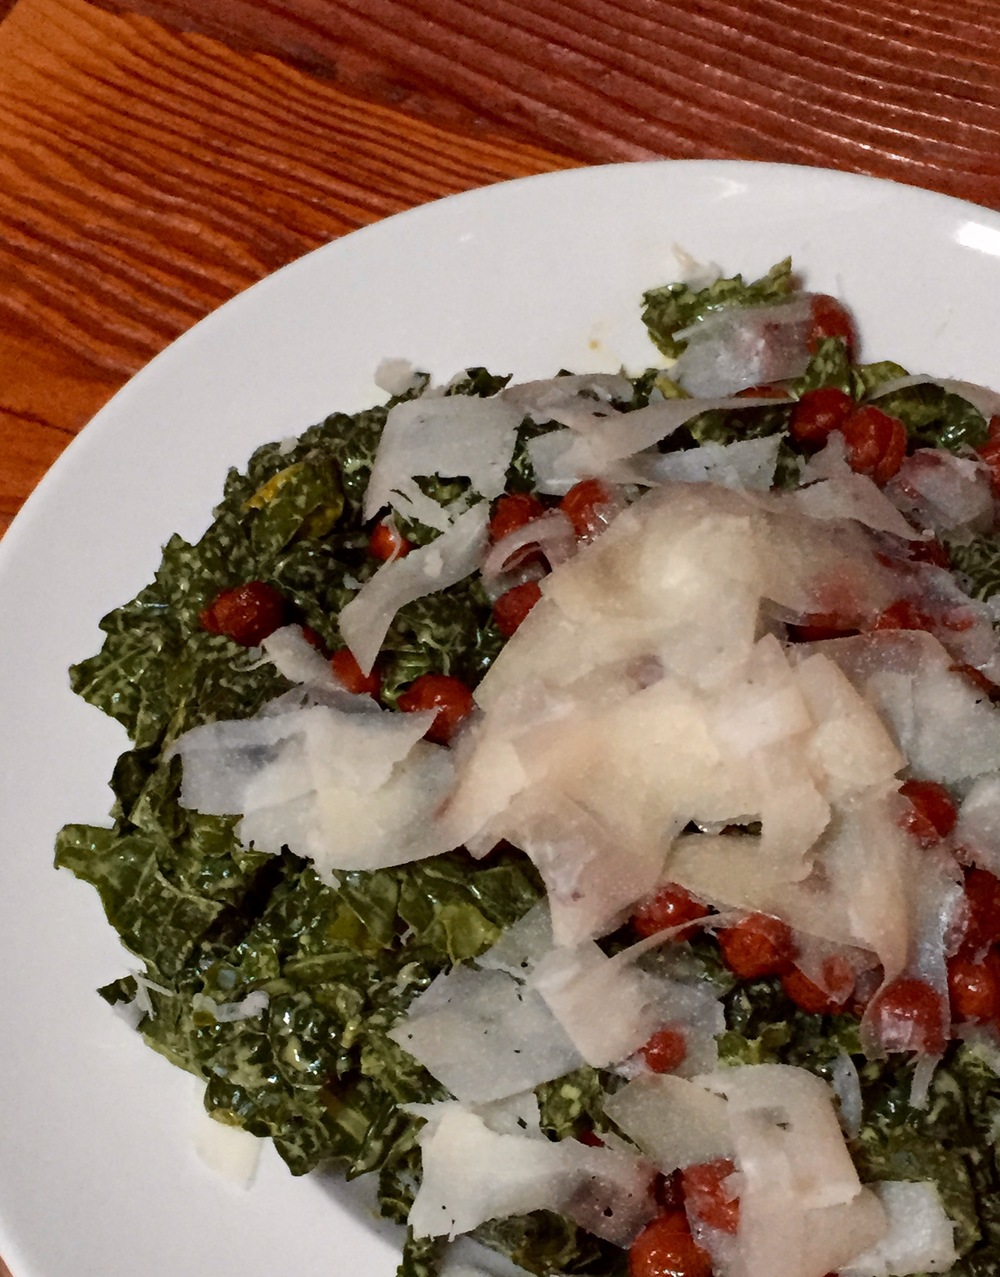 Kale with green goddess dressing, manchego, castelvetrano olives, and fried chickpeas.